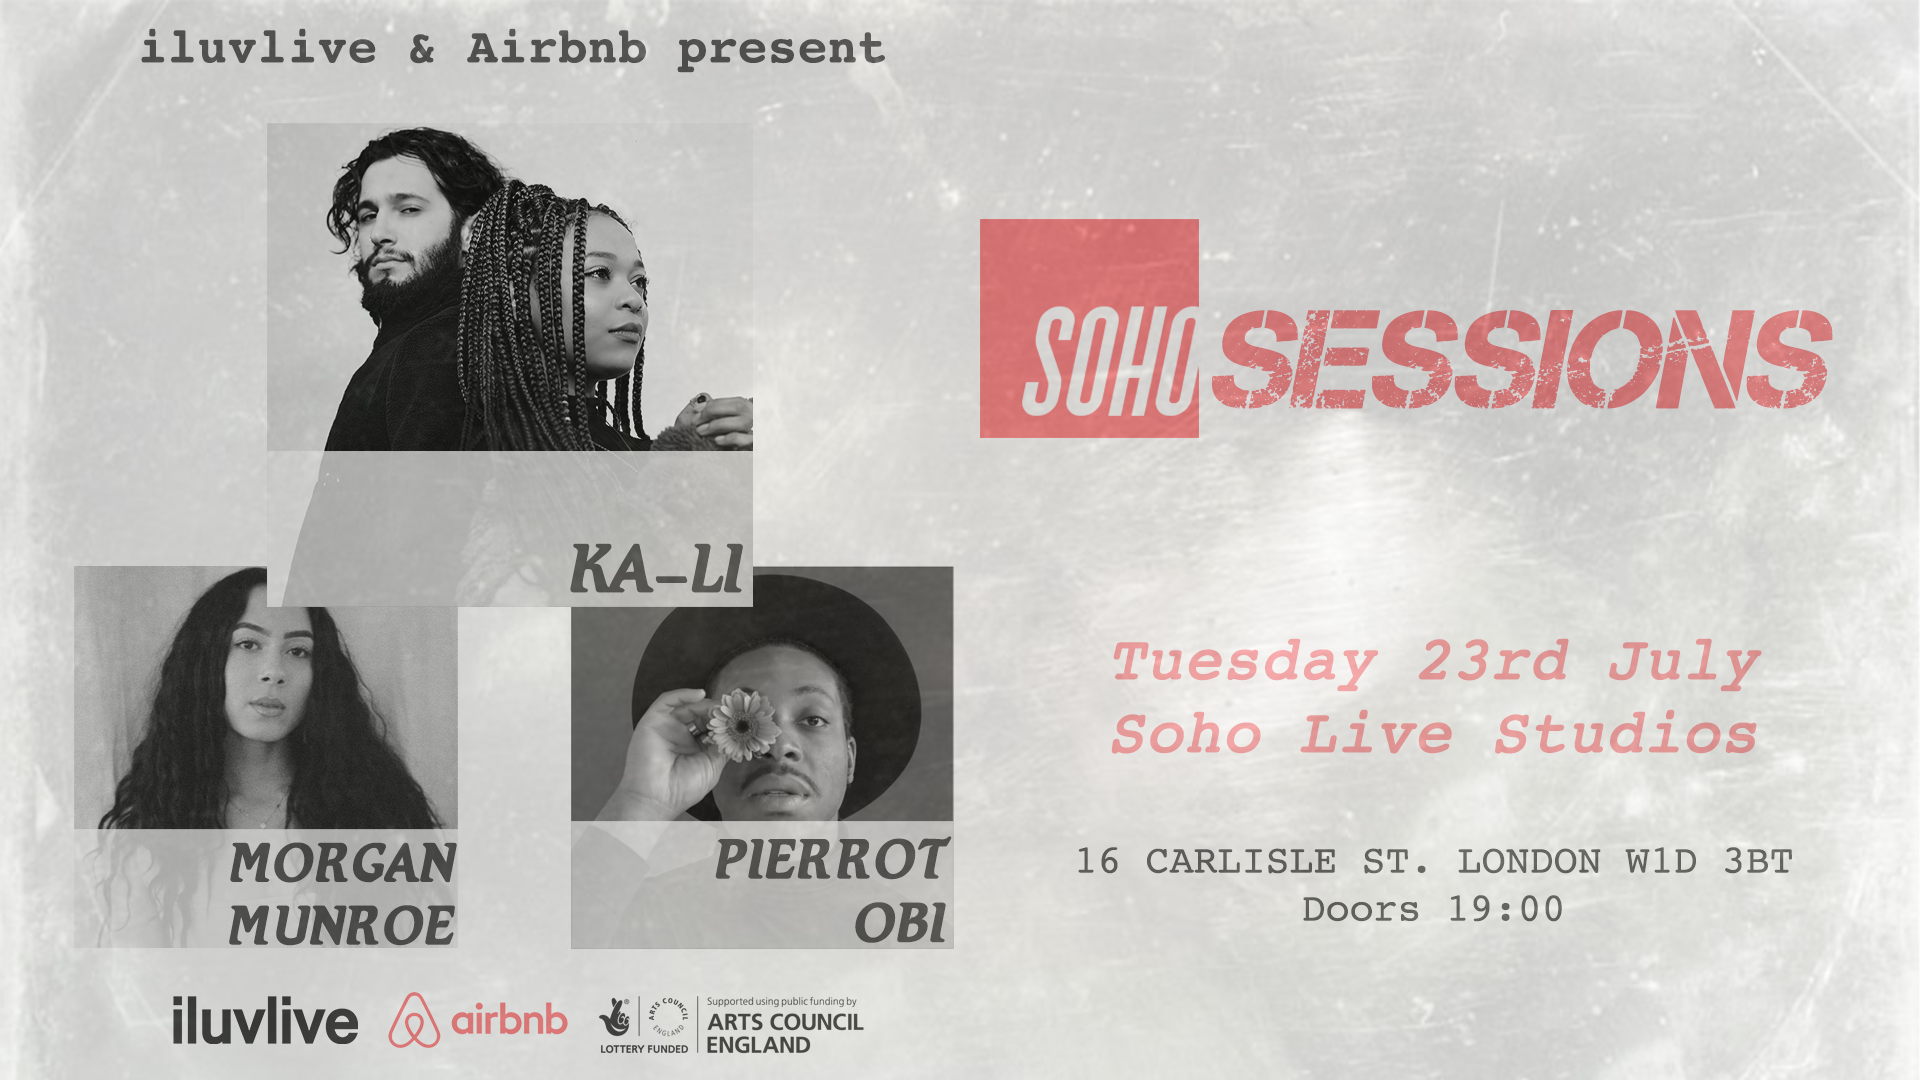 Soho Sessions Airbnb FB Banner July 2019.png